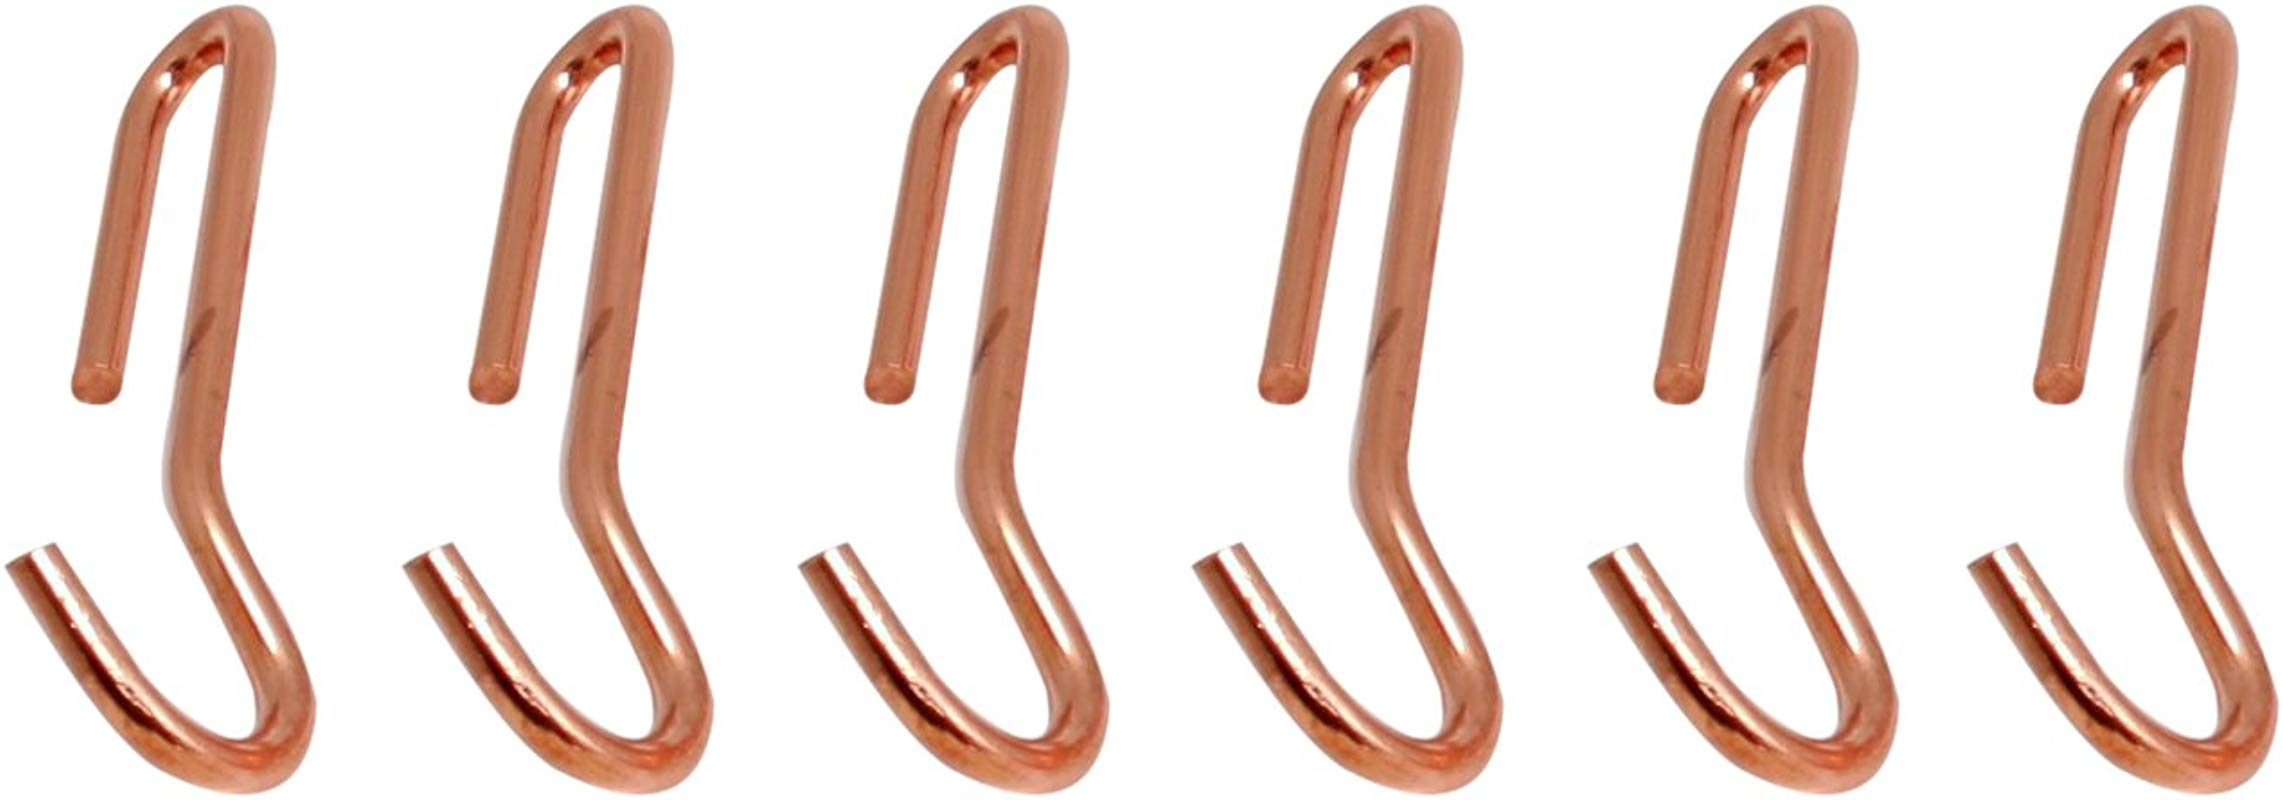 Enclume Angled Pot Hook Set Of 6 Use With Pot Racks Copper Plated